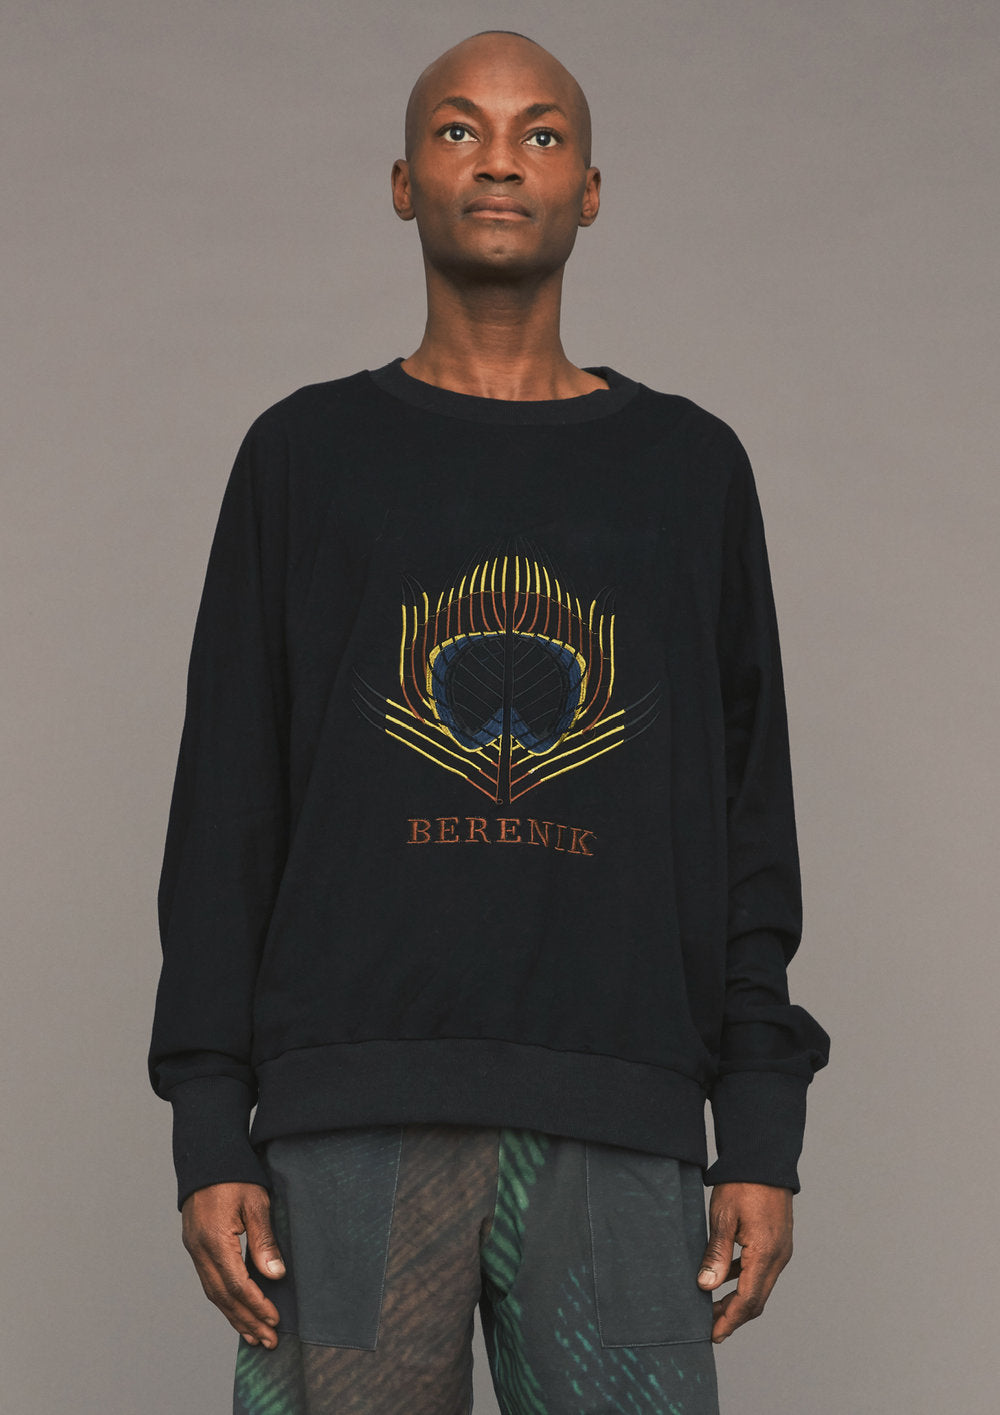 SWEATER OVERSIZED - black with logo embroidery - BERENIK